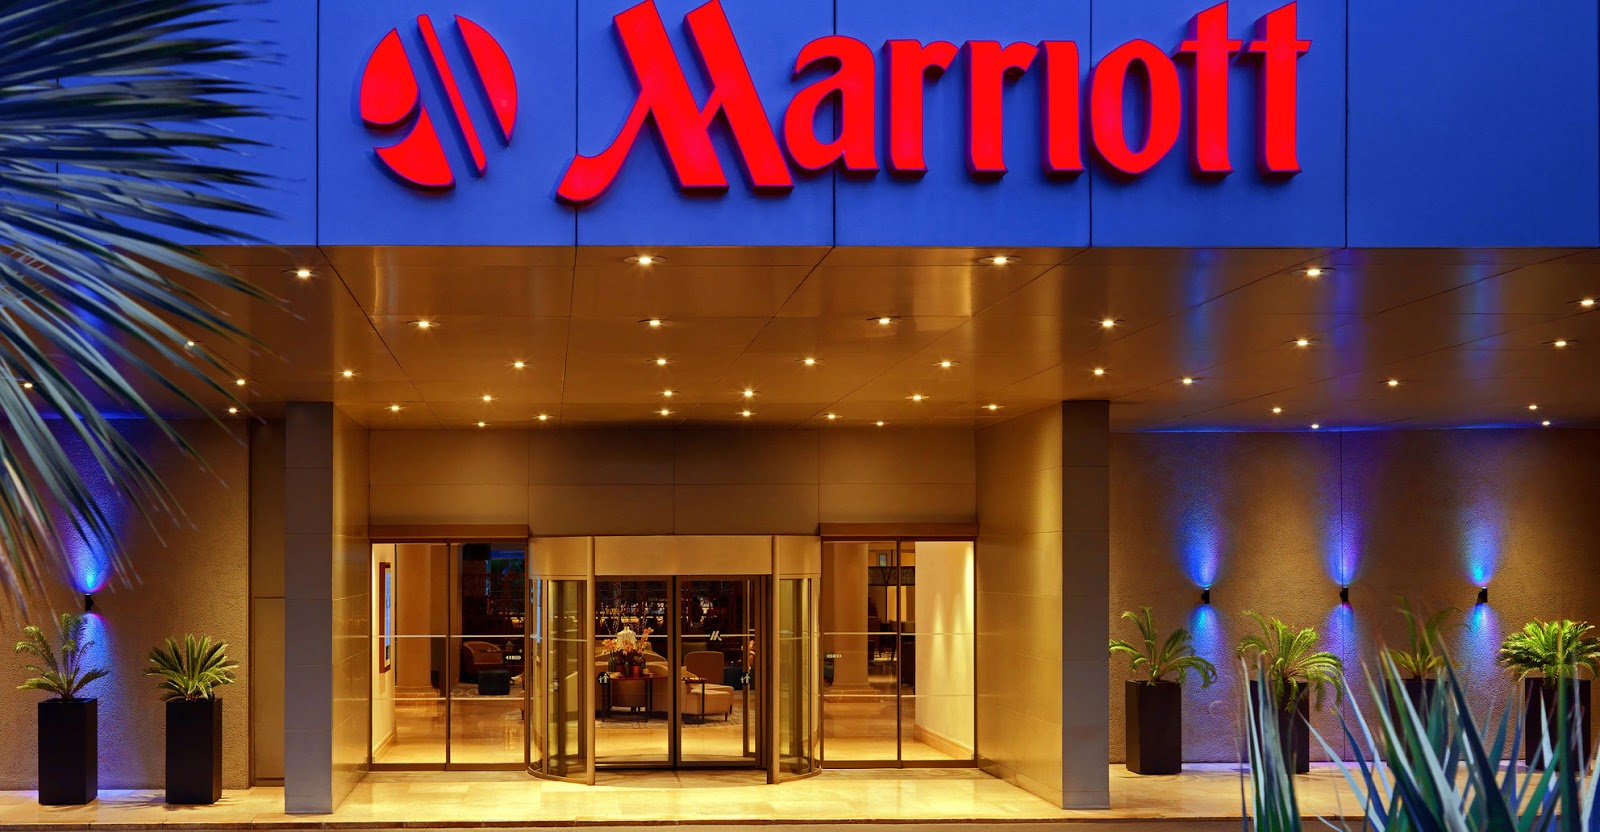 Marriott building entrance - Emerging threats - Marriott hacking